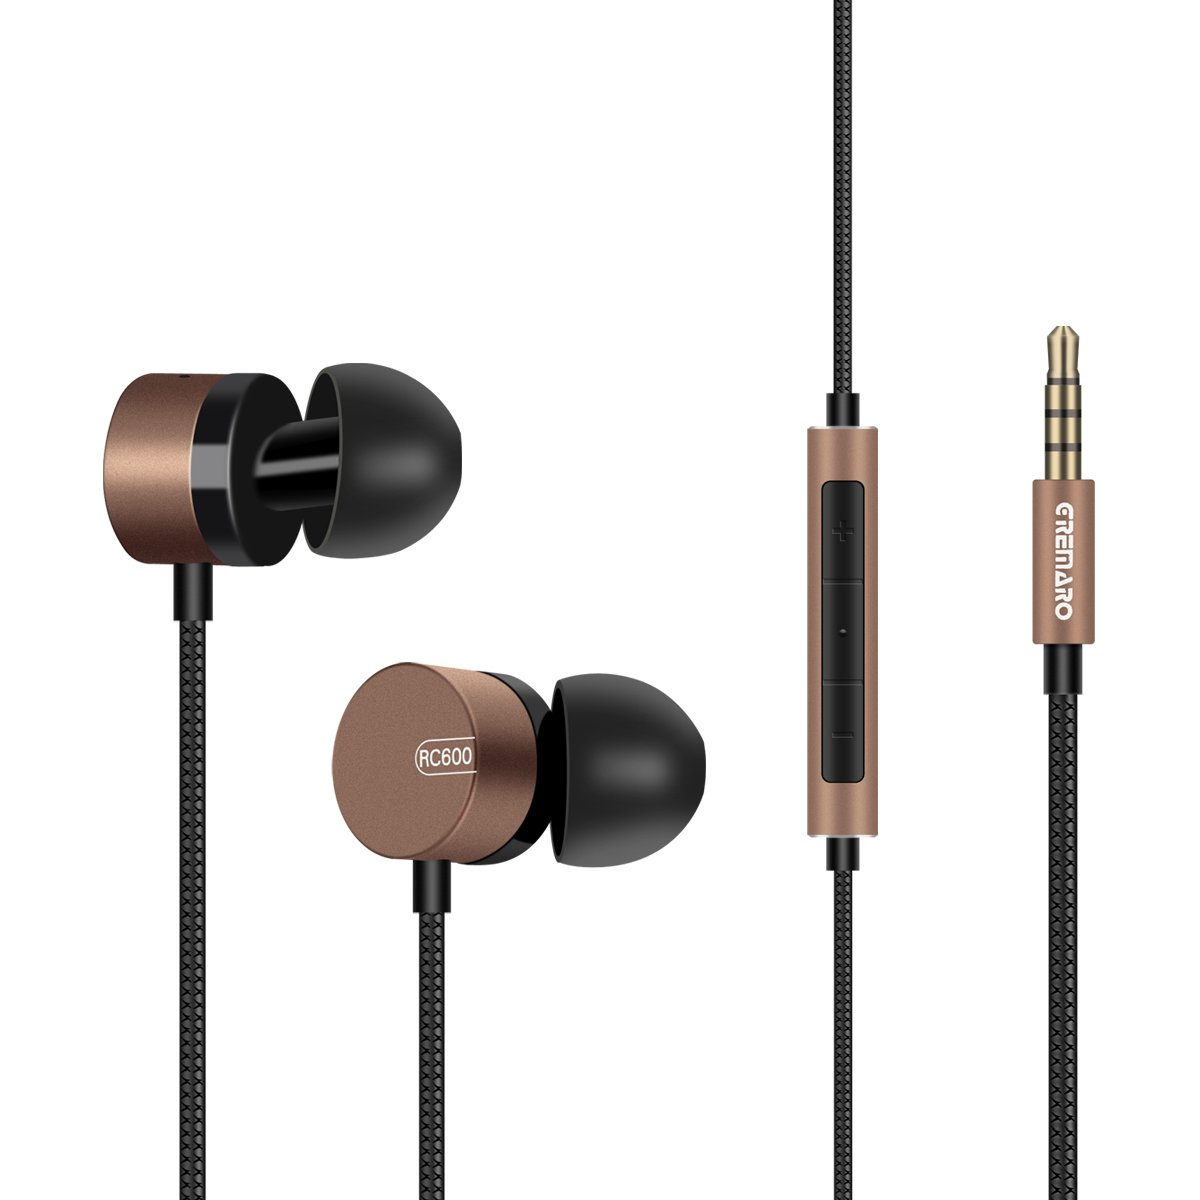 Gremaro Earbuds Headphones with Microphone Bass Metal Housing in Ear High Definition Noise Cancelling Earphones Wired Lightweight Volume Control Headset Sweatproof (Brown)